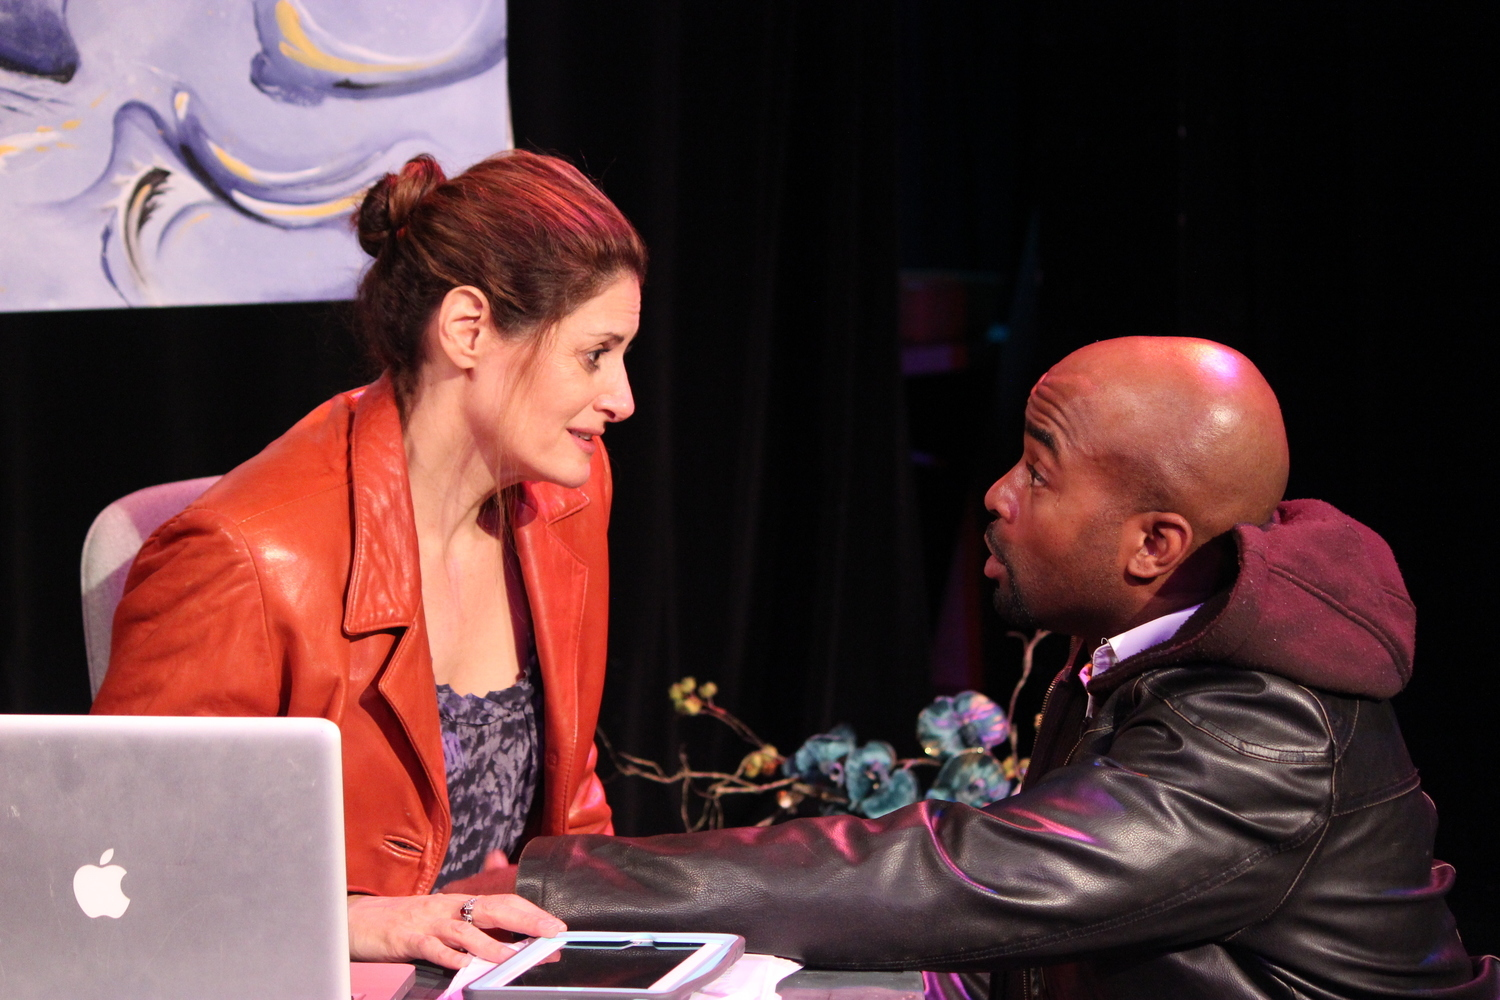 BWW Review: SEX WITH STRANGERS Is a Steamy, Brainy Brew